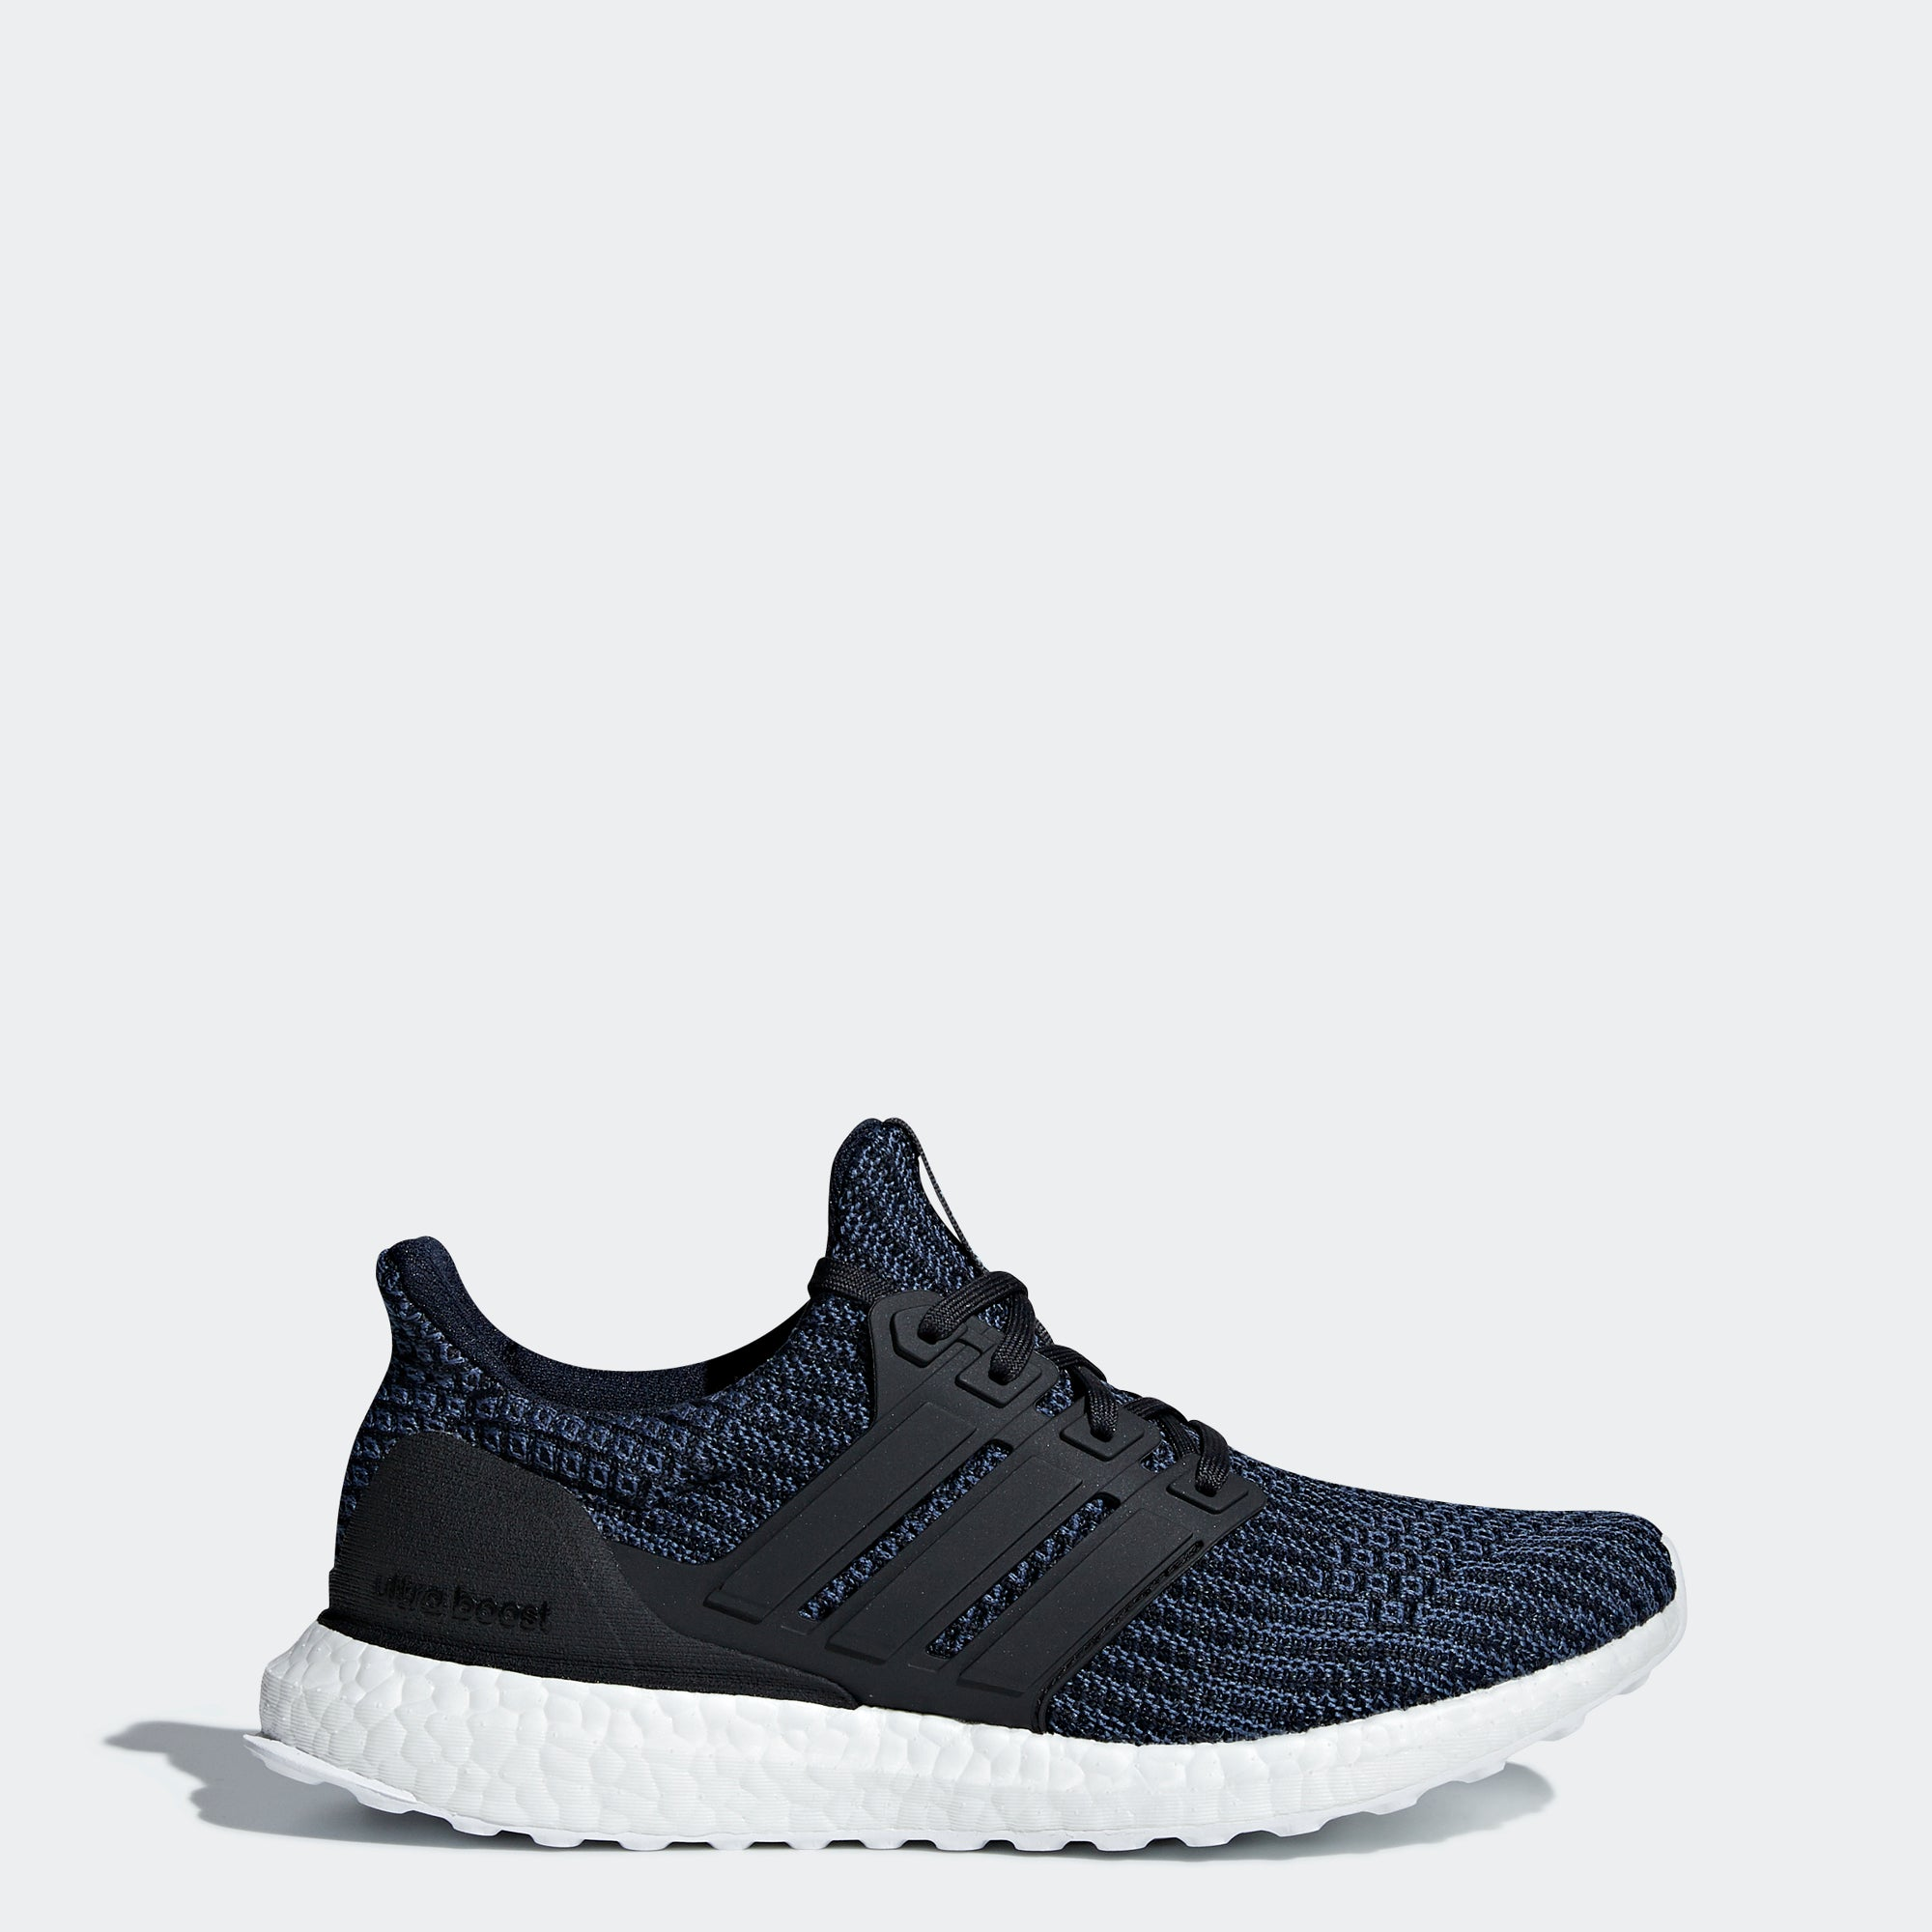 promo code fcb28 c14f8 adidas UltraBOOST Parley Shoes Navy AC8205 | Chicago City Sports